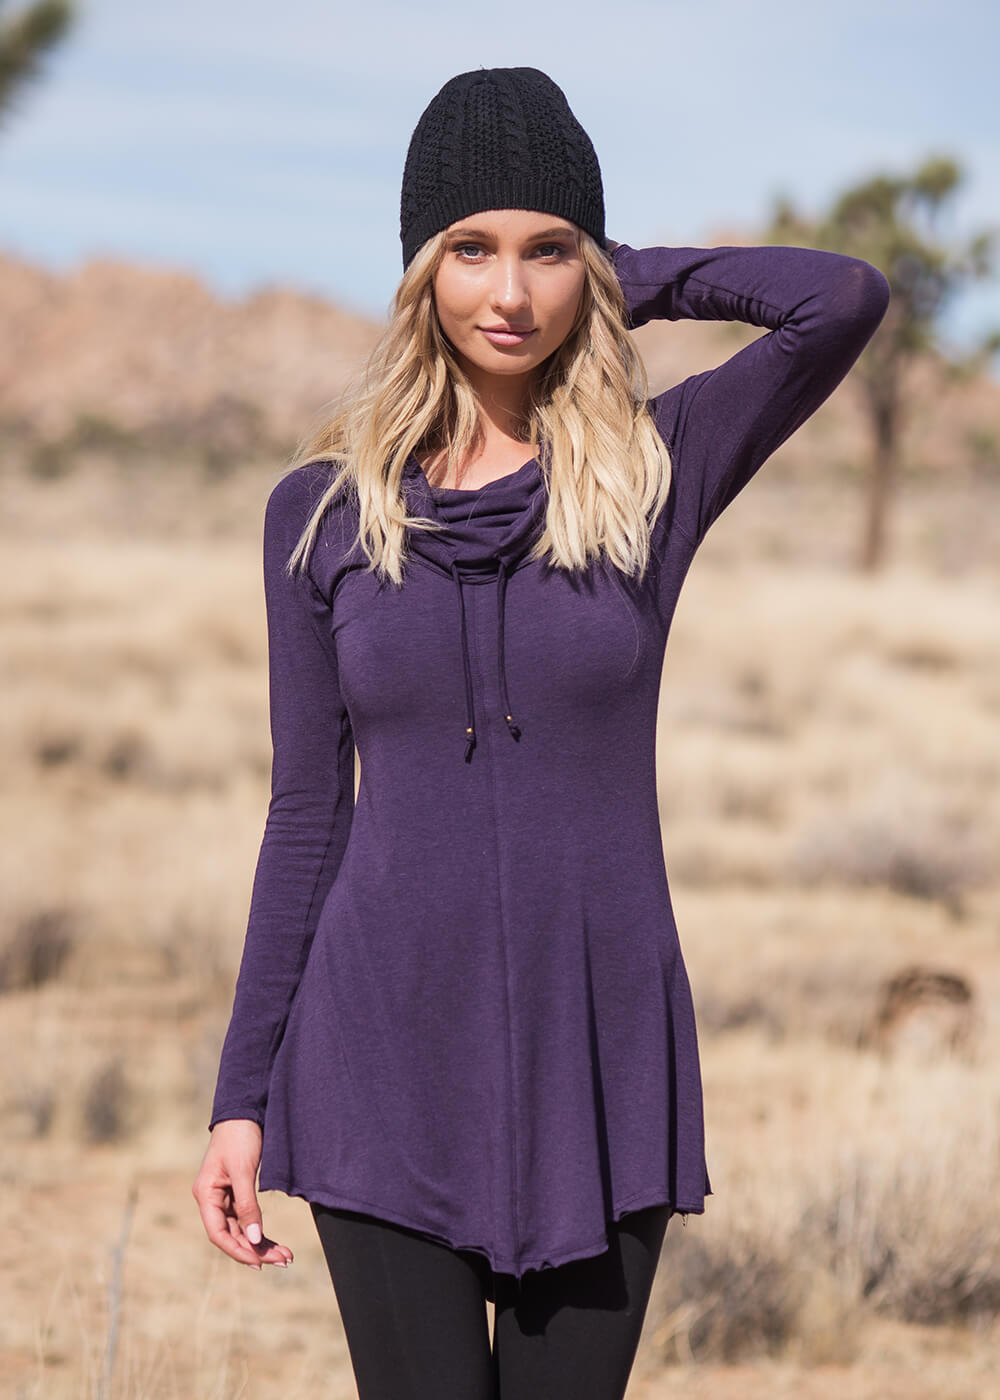 Prophecy Tunic in Organic Cotton & Bamboo - Nomads Hemp Wear